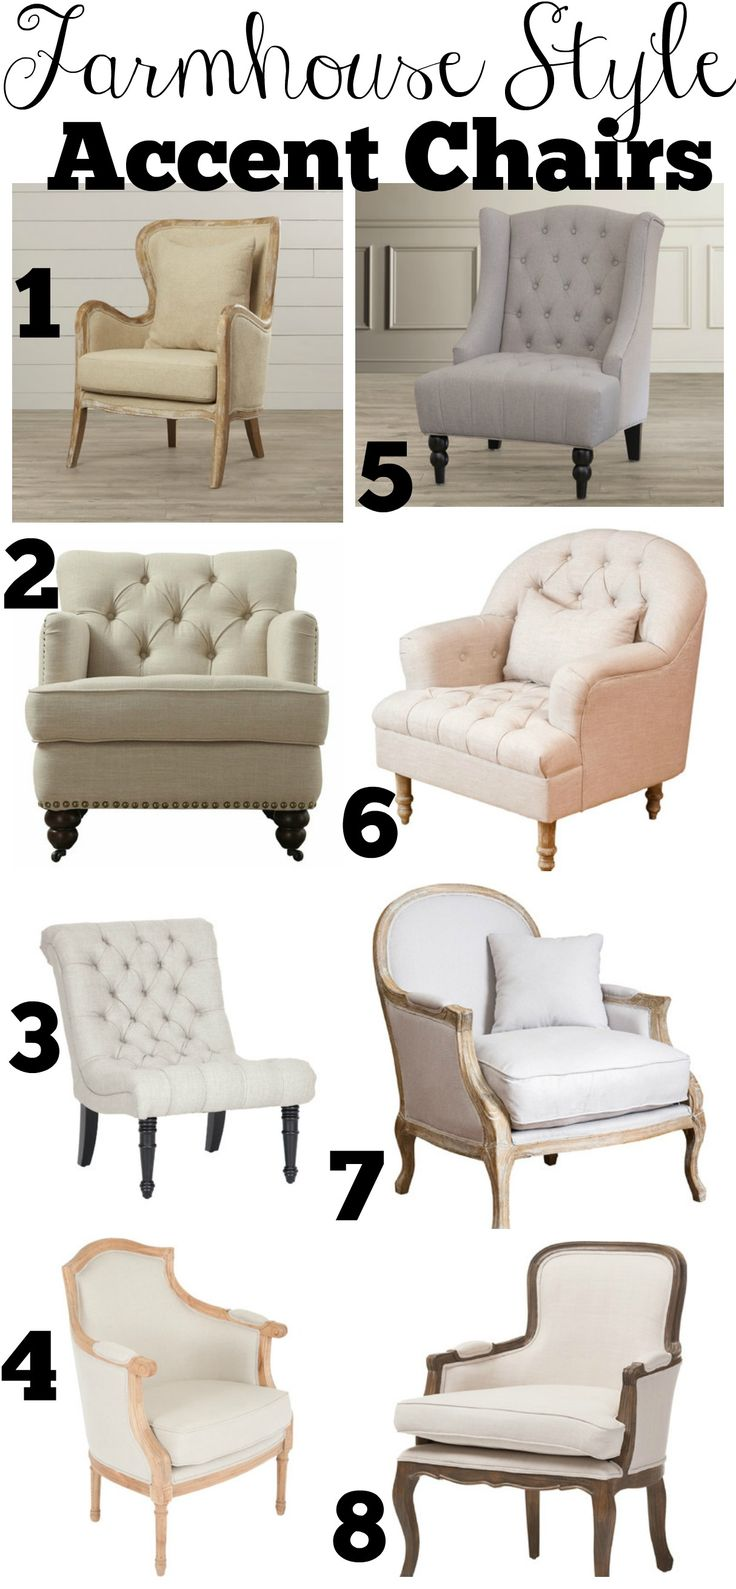 Living Room Sitting Chairs 17 Best Ideas About Living Room Accent Chairs On Pinterest